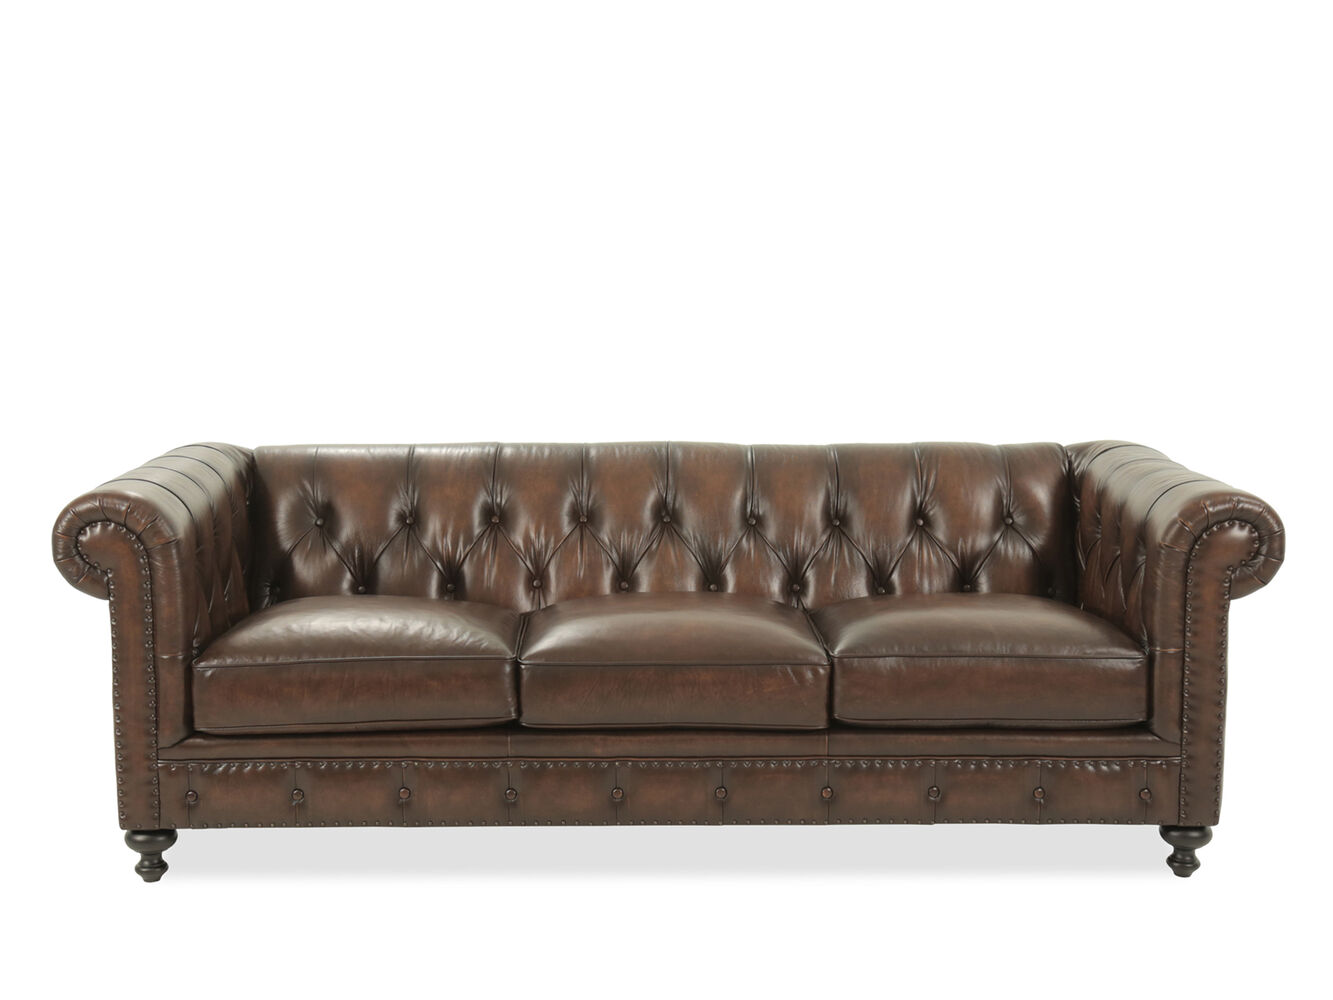 leather button tufted 92 5 sofa in dark brown mathis. Black Bedroom Furniture Sets. Home Design Ideas